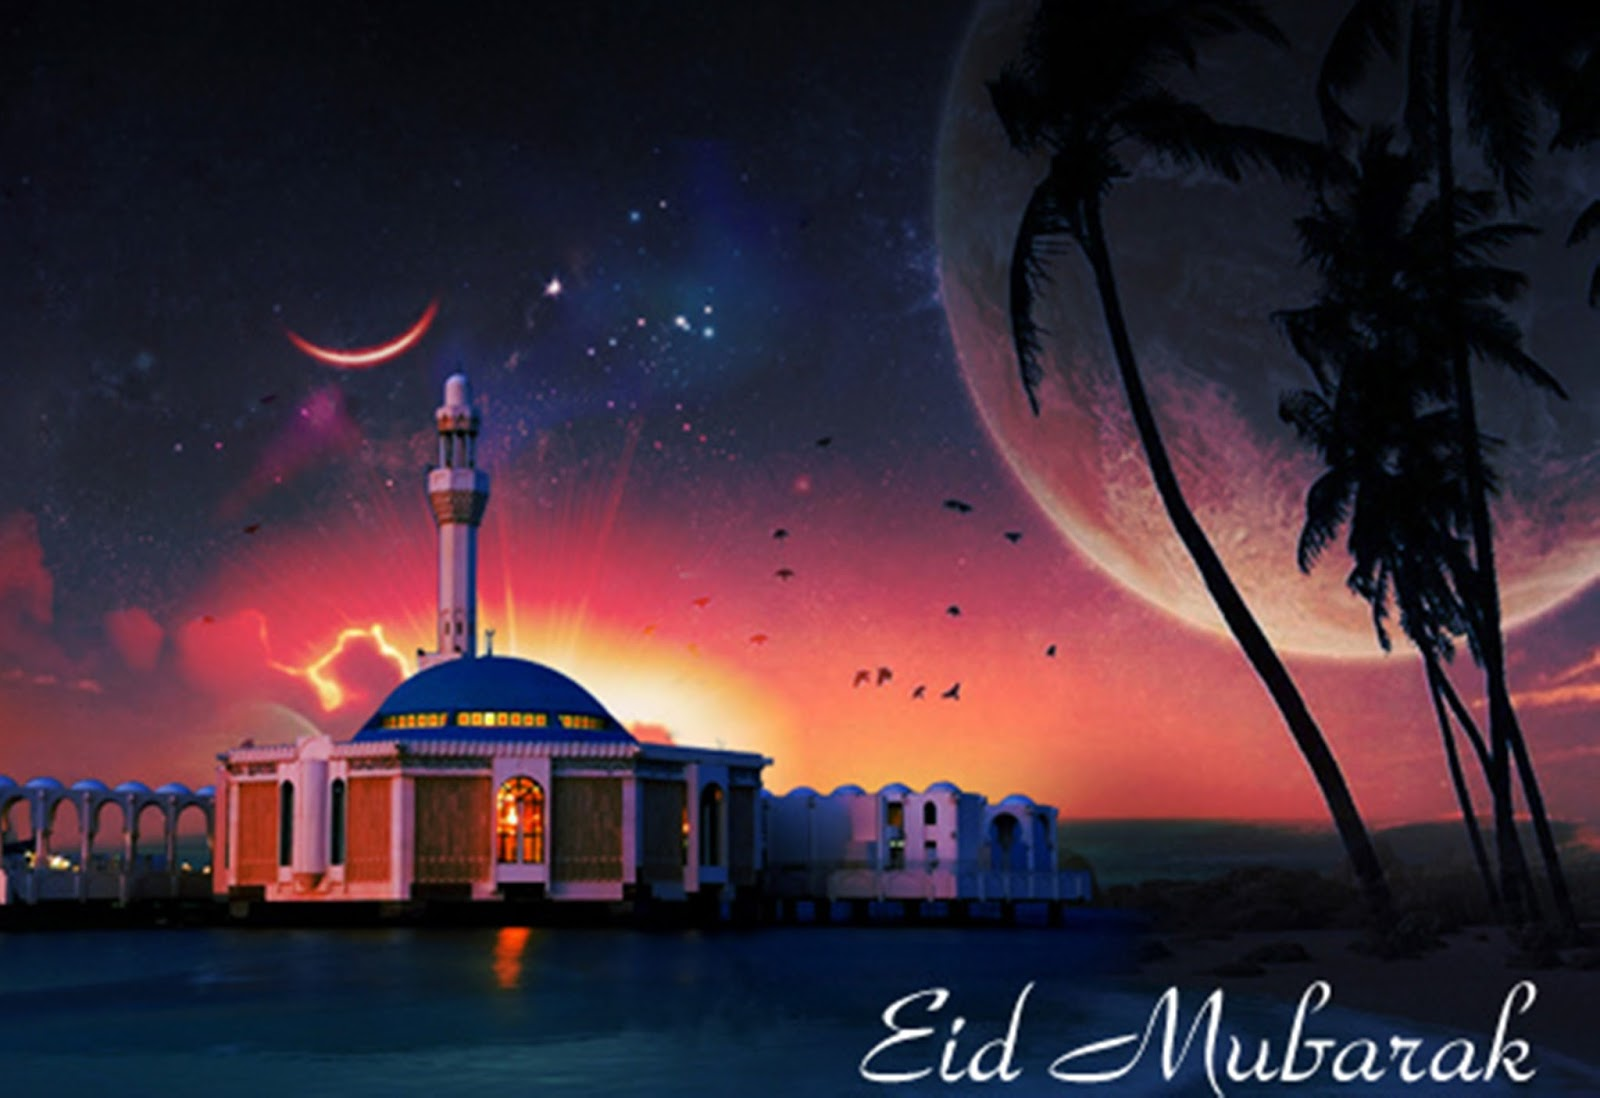 Eid mubarak cards free download wishing happy eid mubarak best cards good night wishes to my love cards m4hsunfo